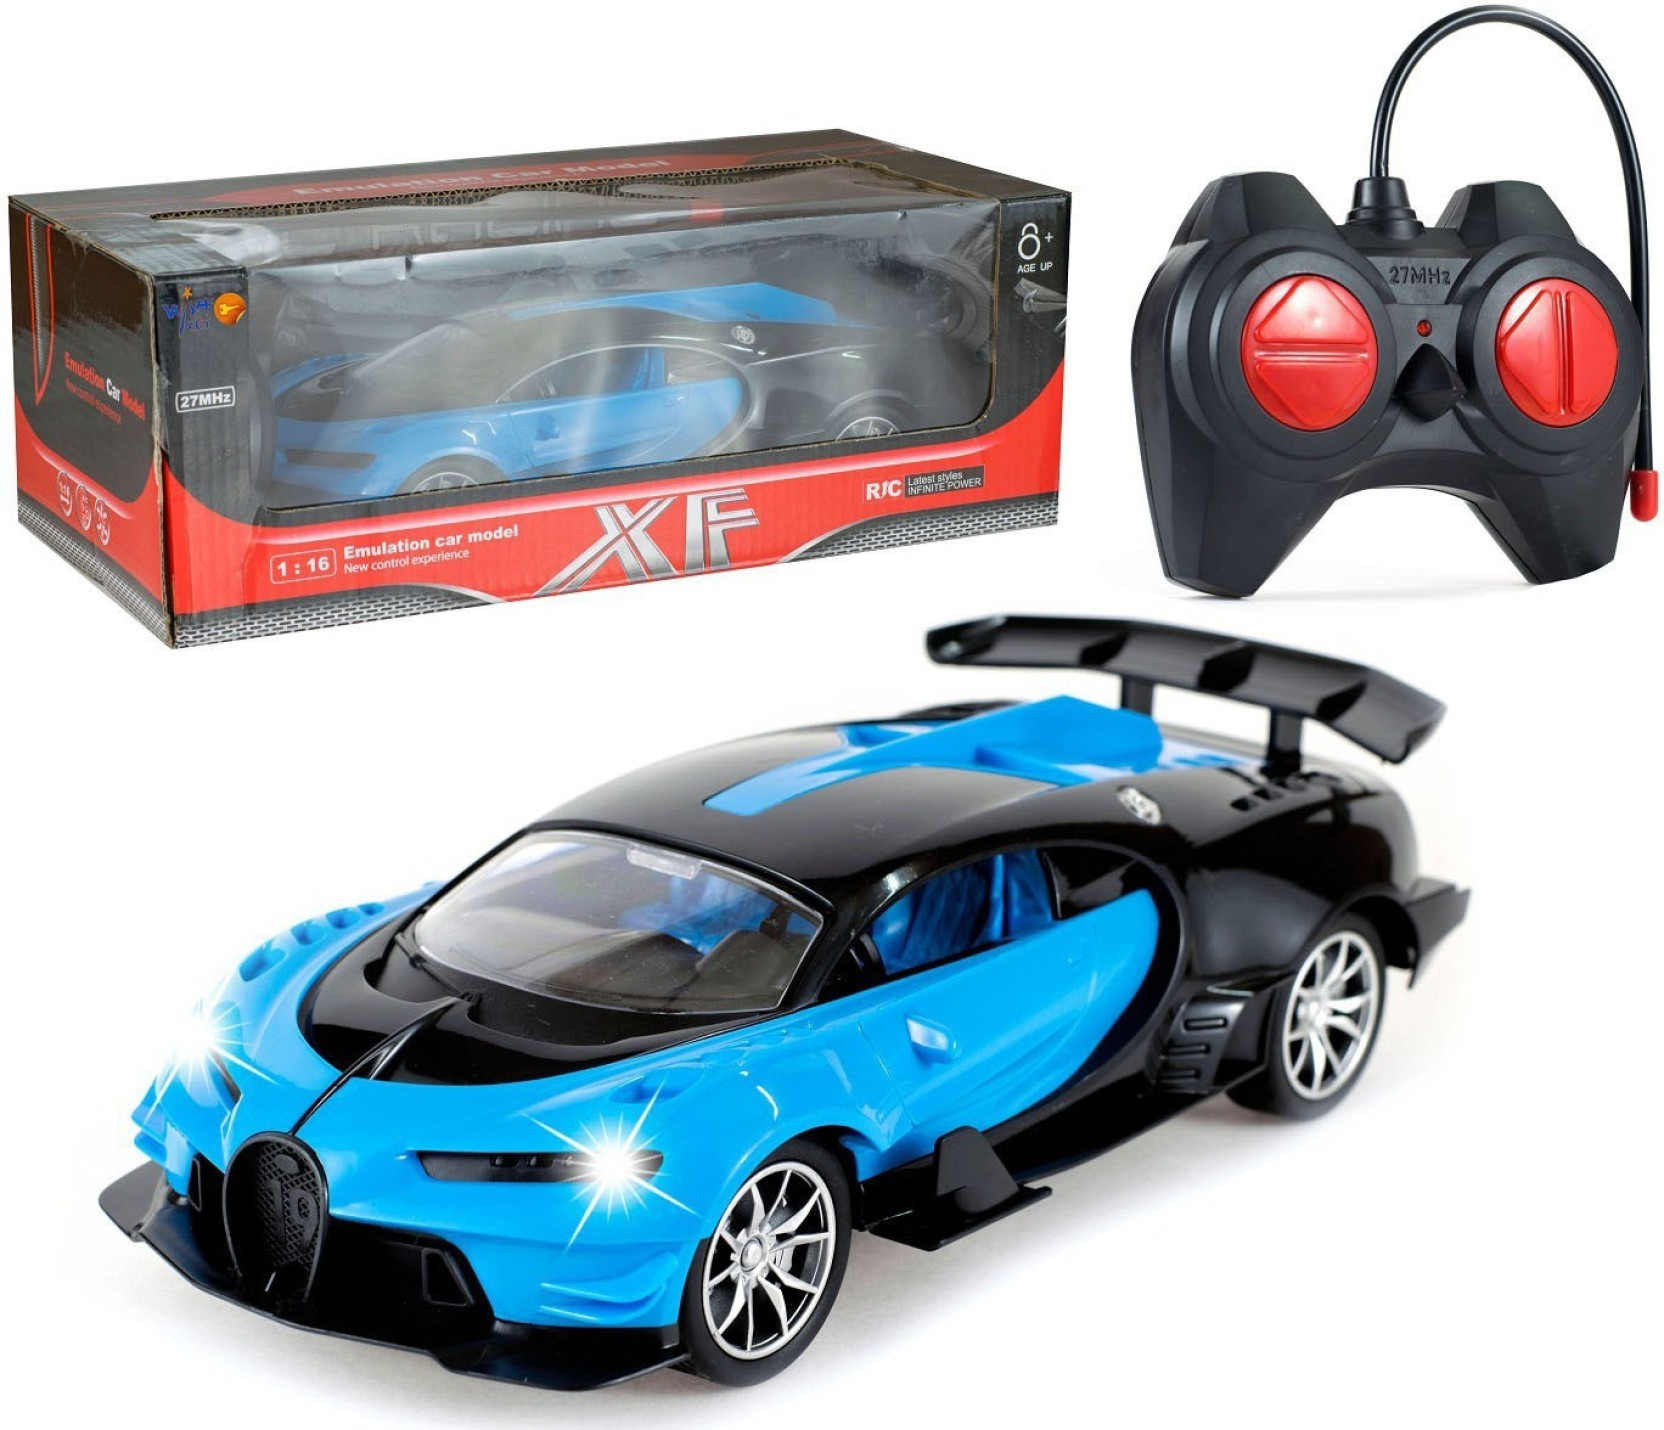 Wishkey Remote Control High Speed Racing Car For Kids